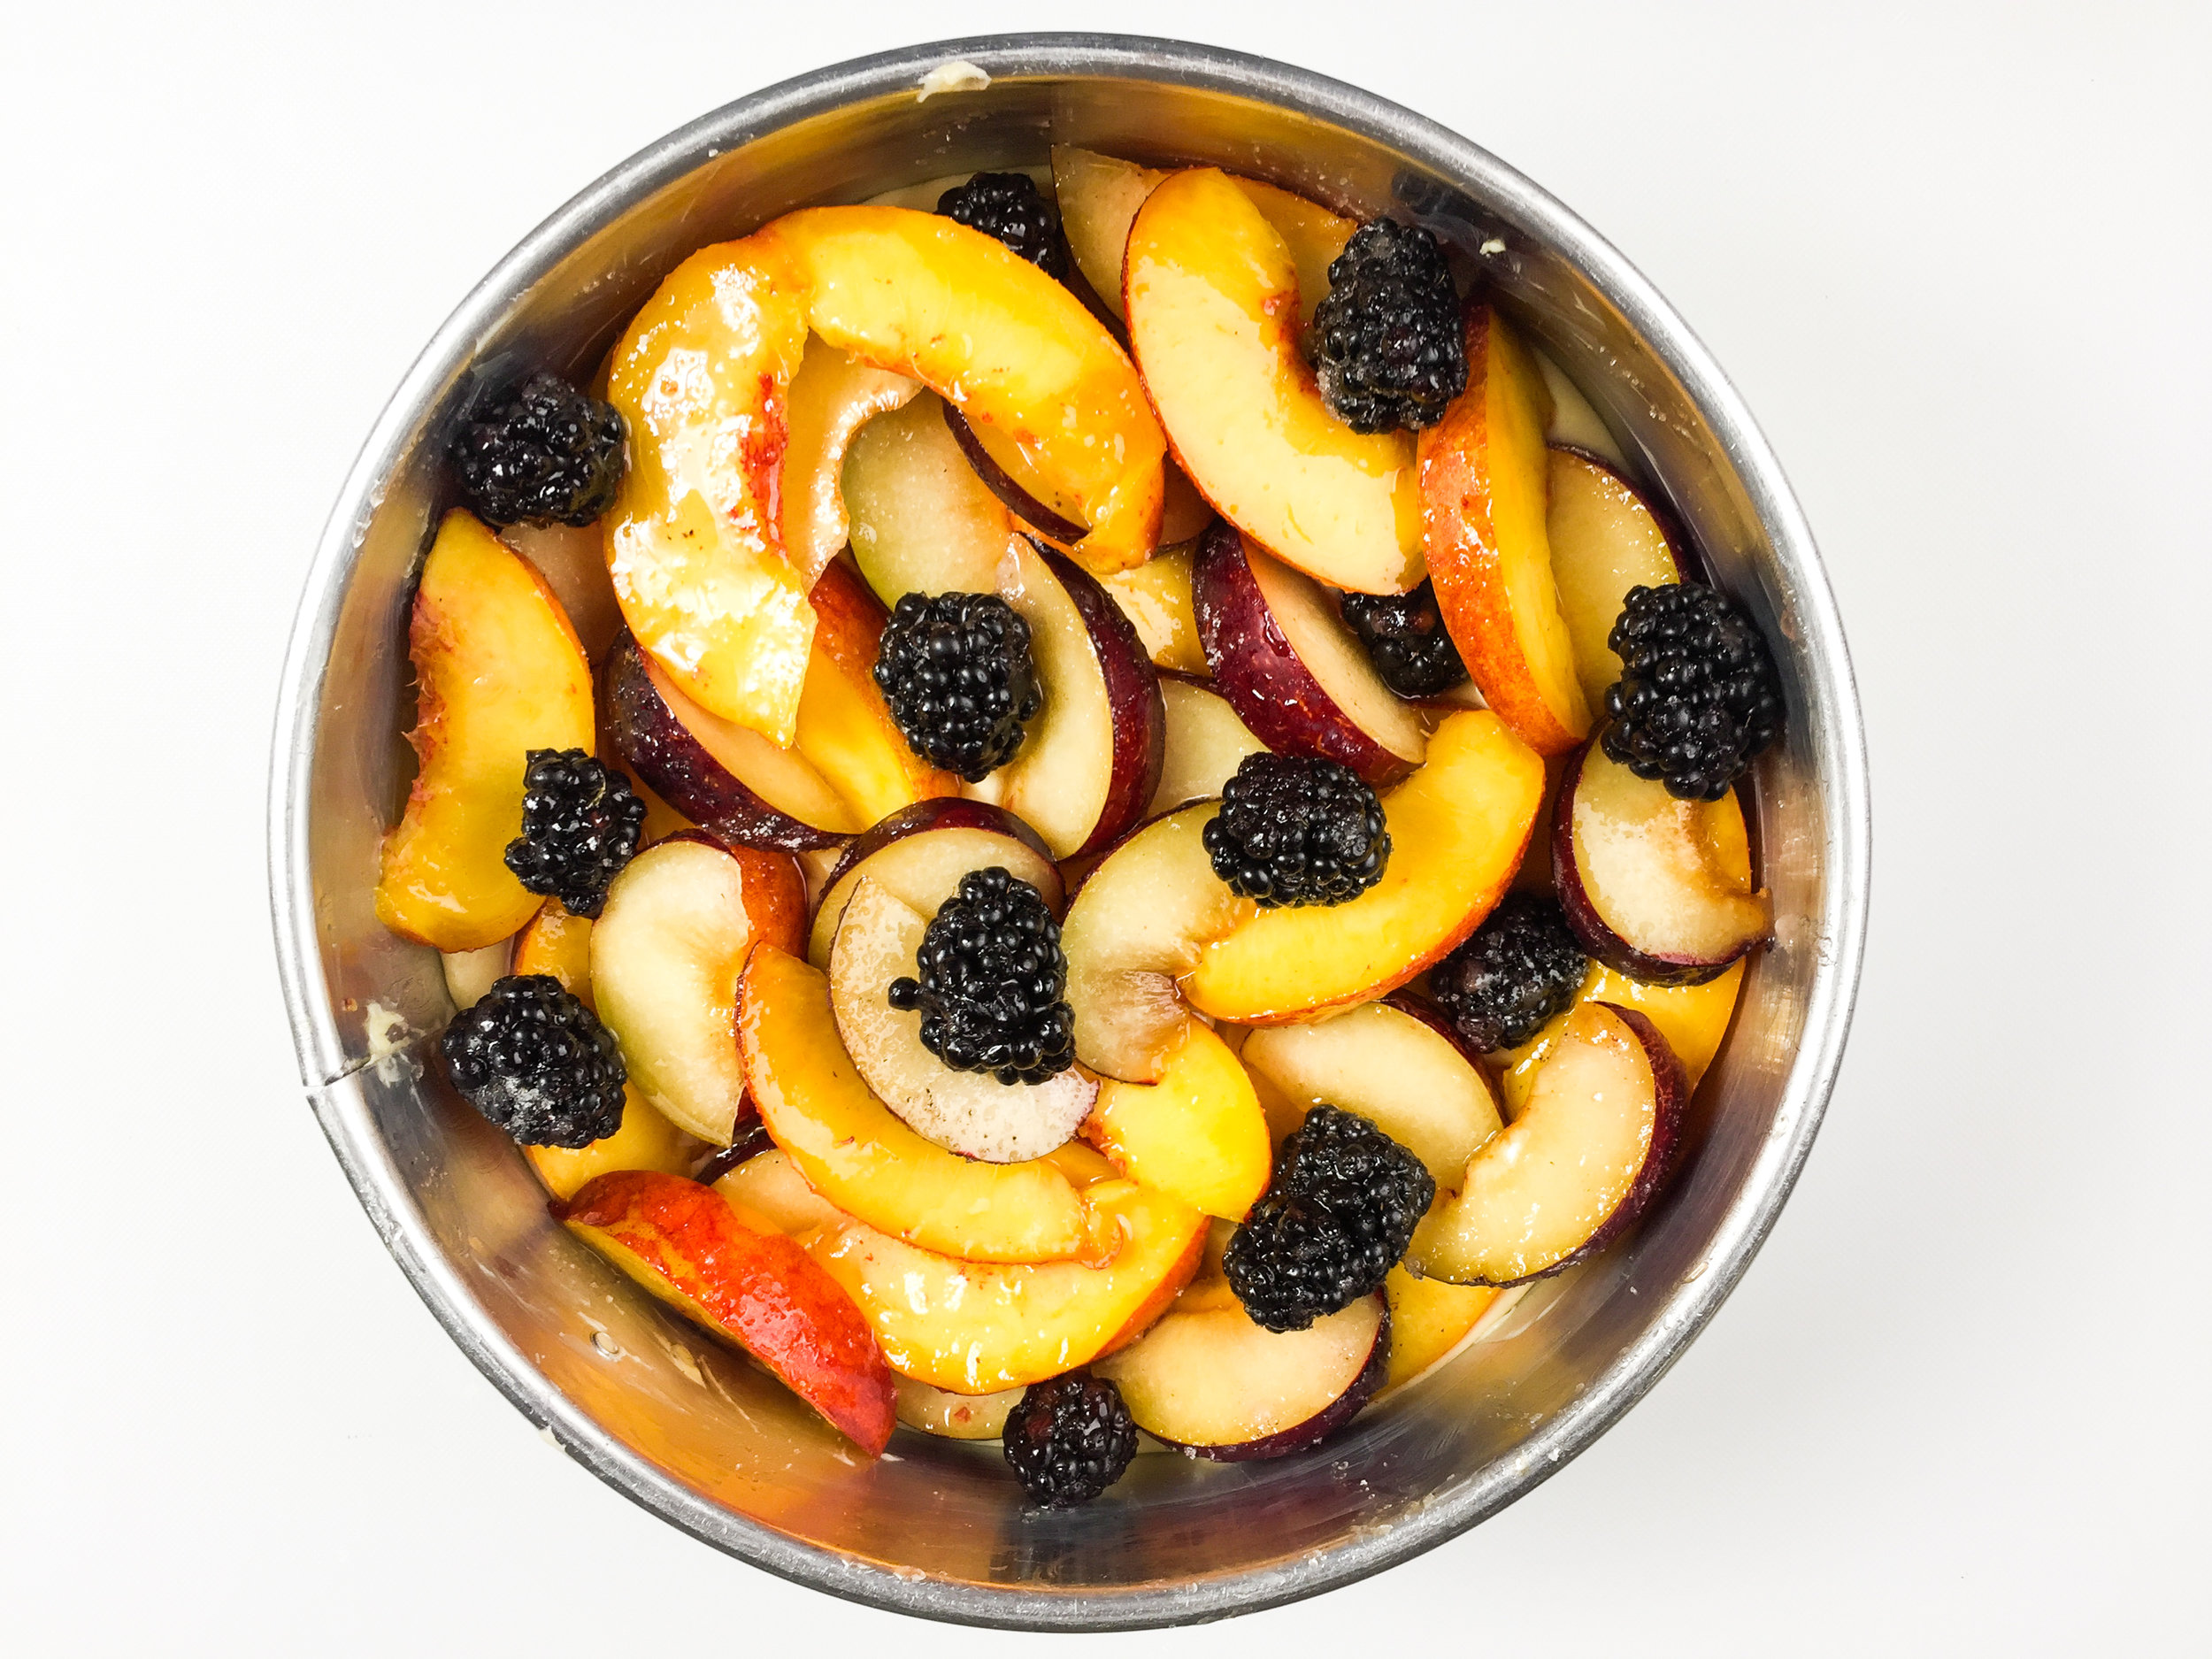 "Summer fruit arranged ""higgledy-piddledy"" on top of the batter"